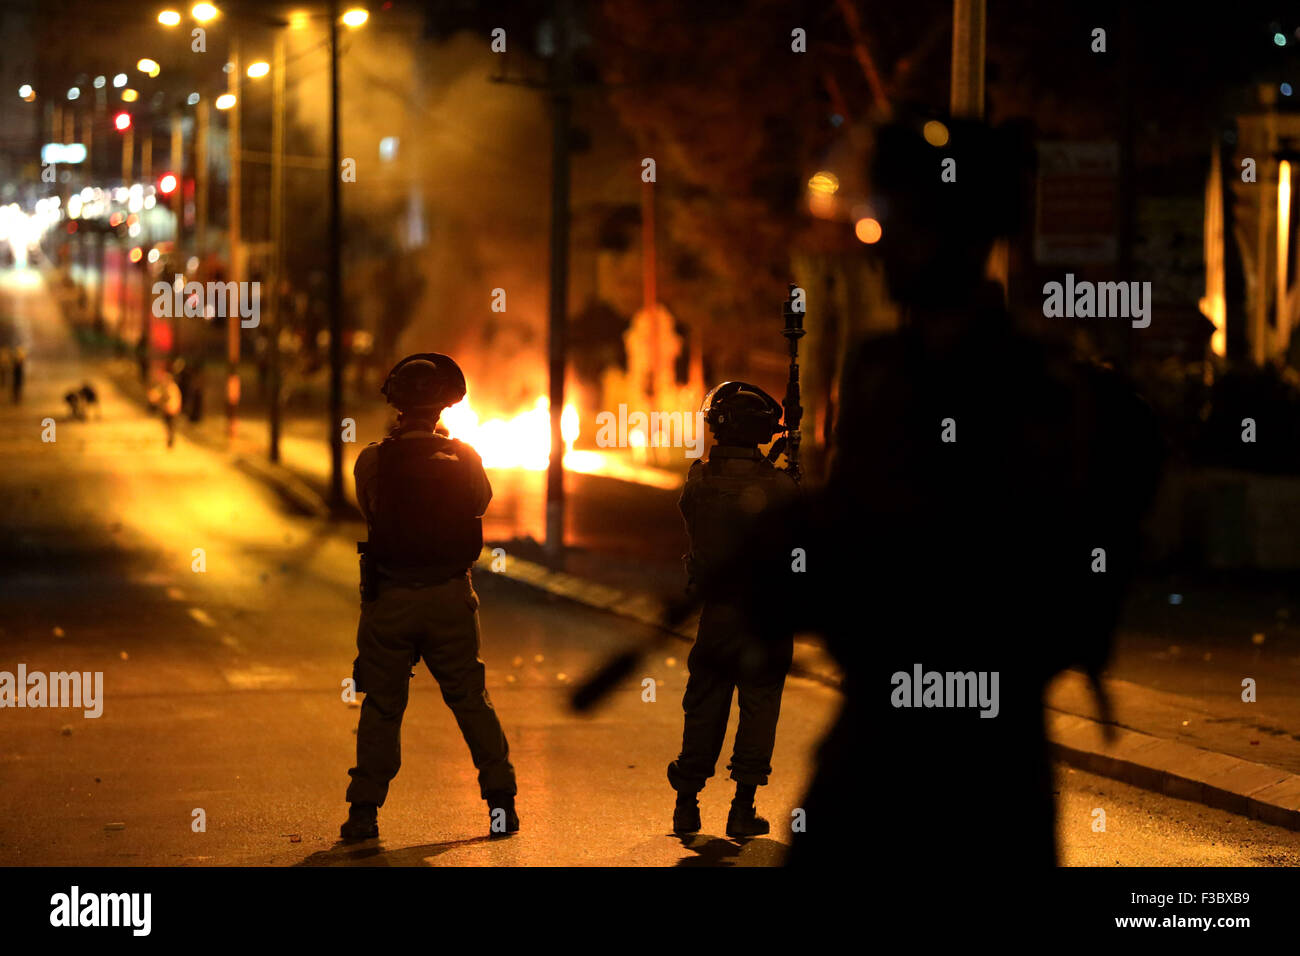 Palestinians across the West Bank and Eastern Jerusalem have been engaged in intense clashes and demonstrations Stock Photo